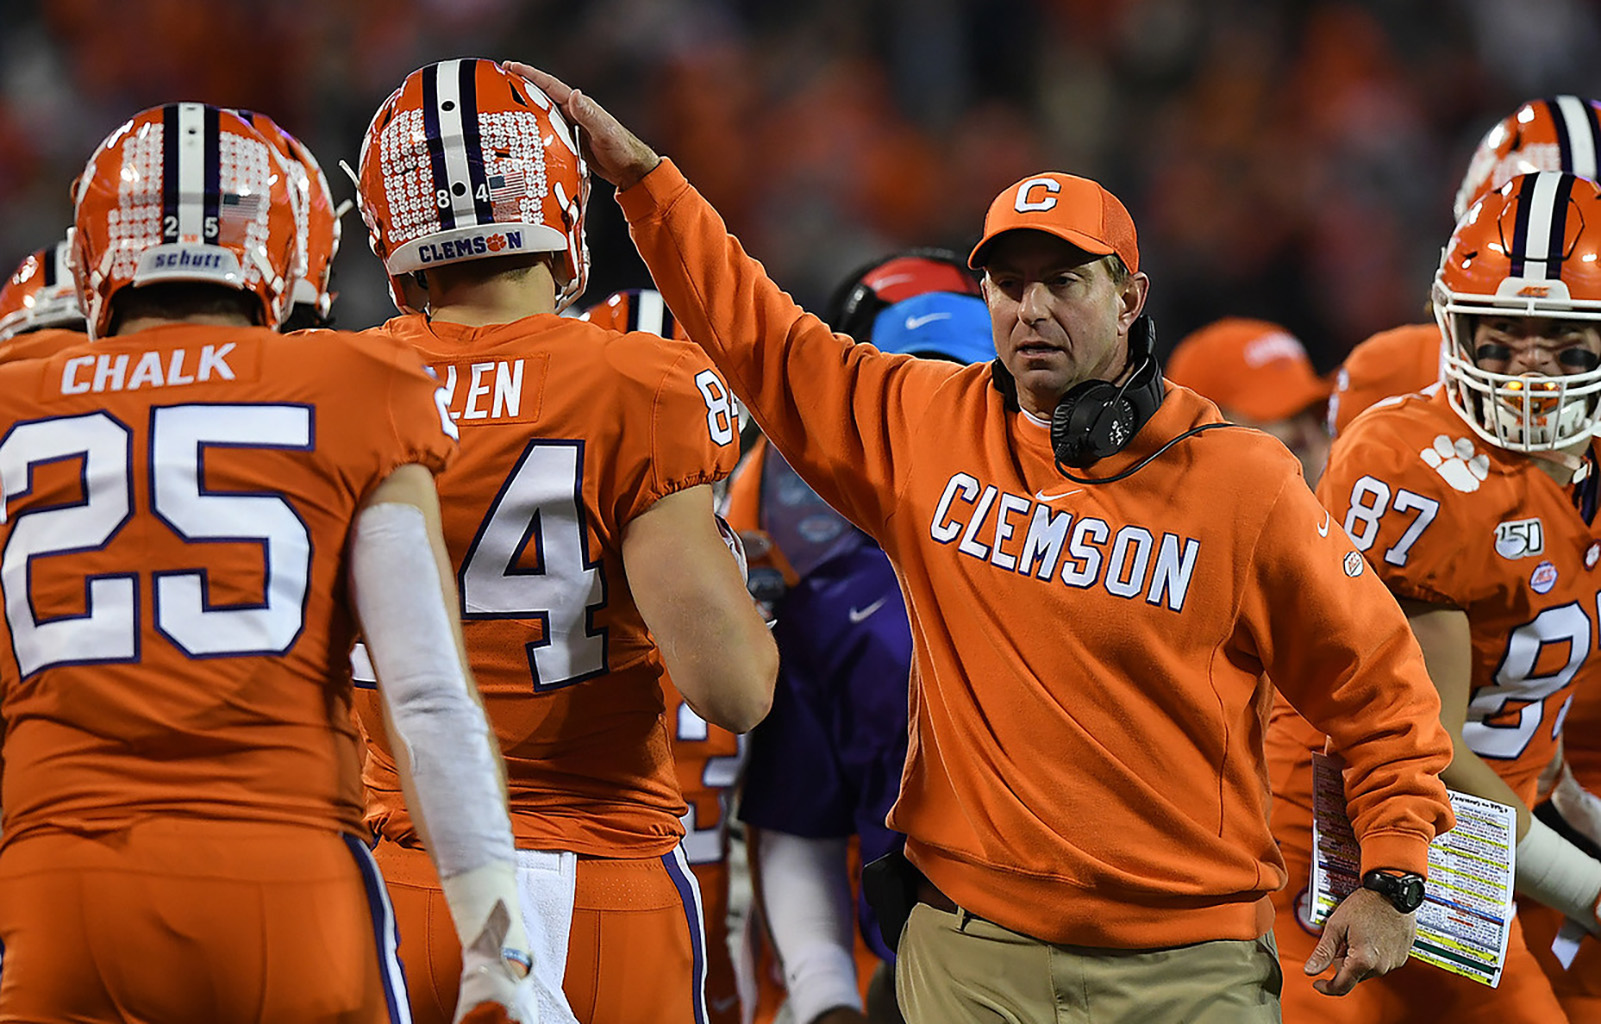 Clemson S 2020 Football Schedule Has Dramatic Changes The Clemson Insider